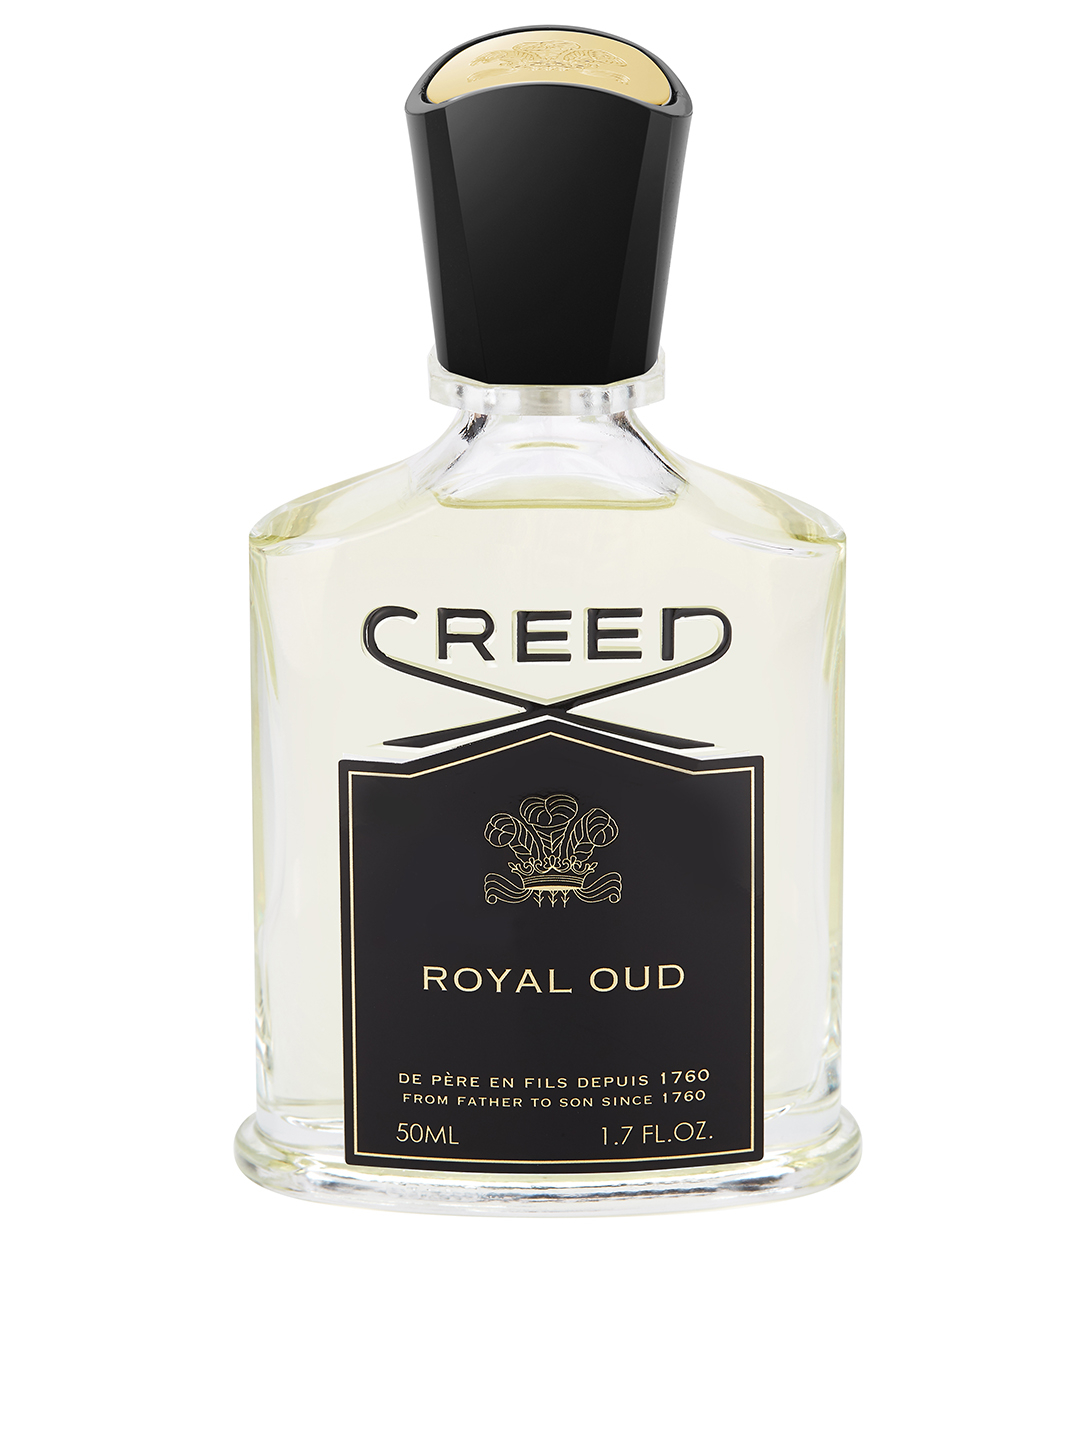 CREED Royal Oud Eau De Parfum Designers